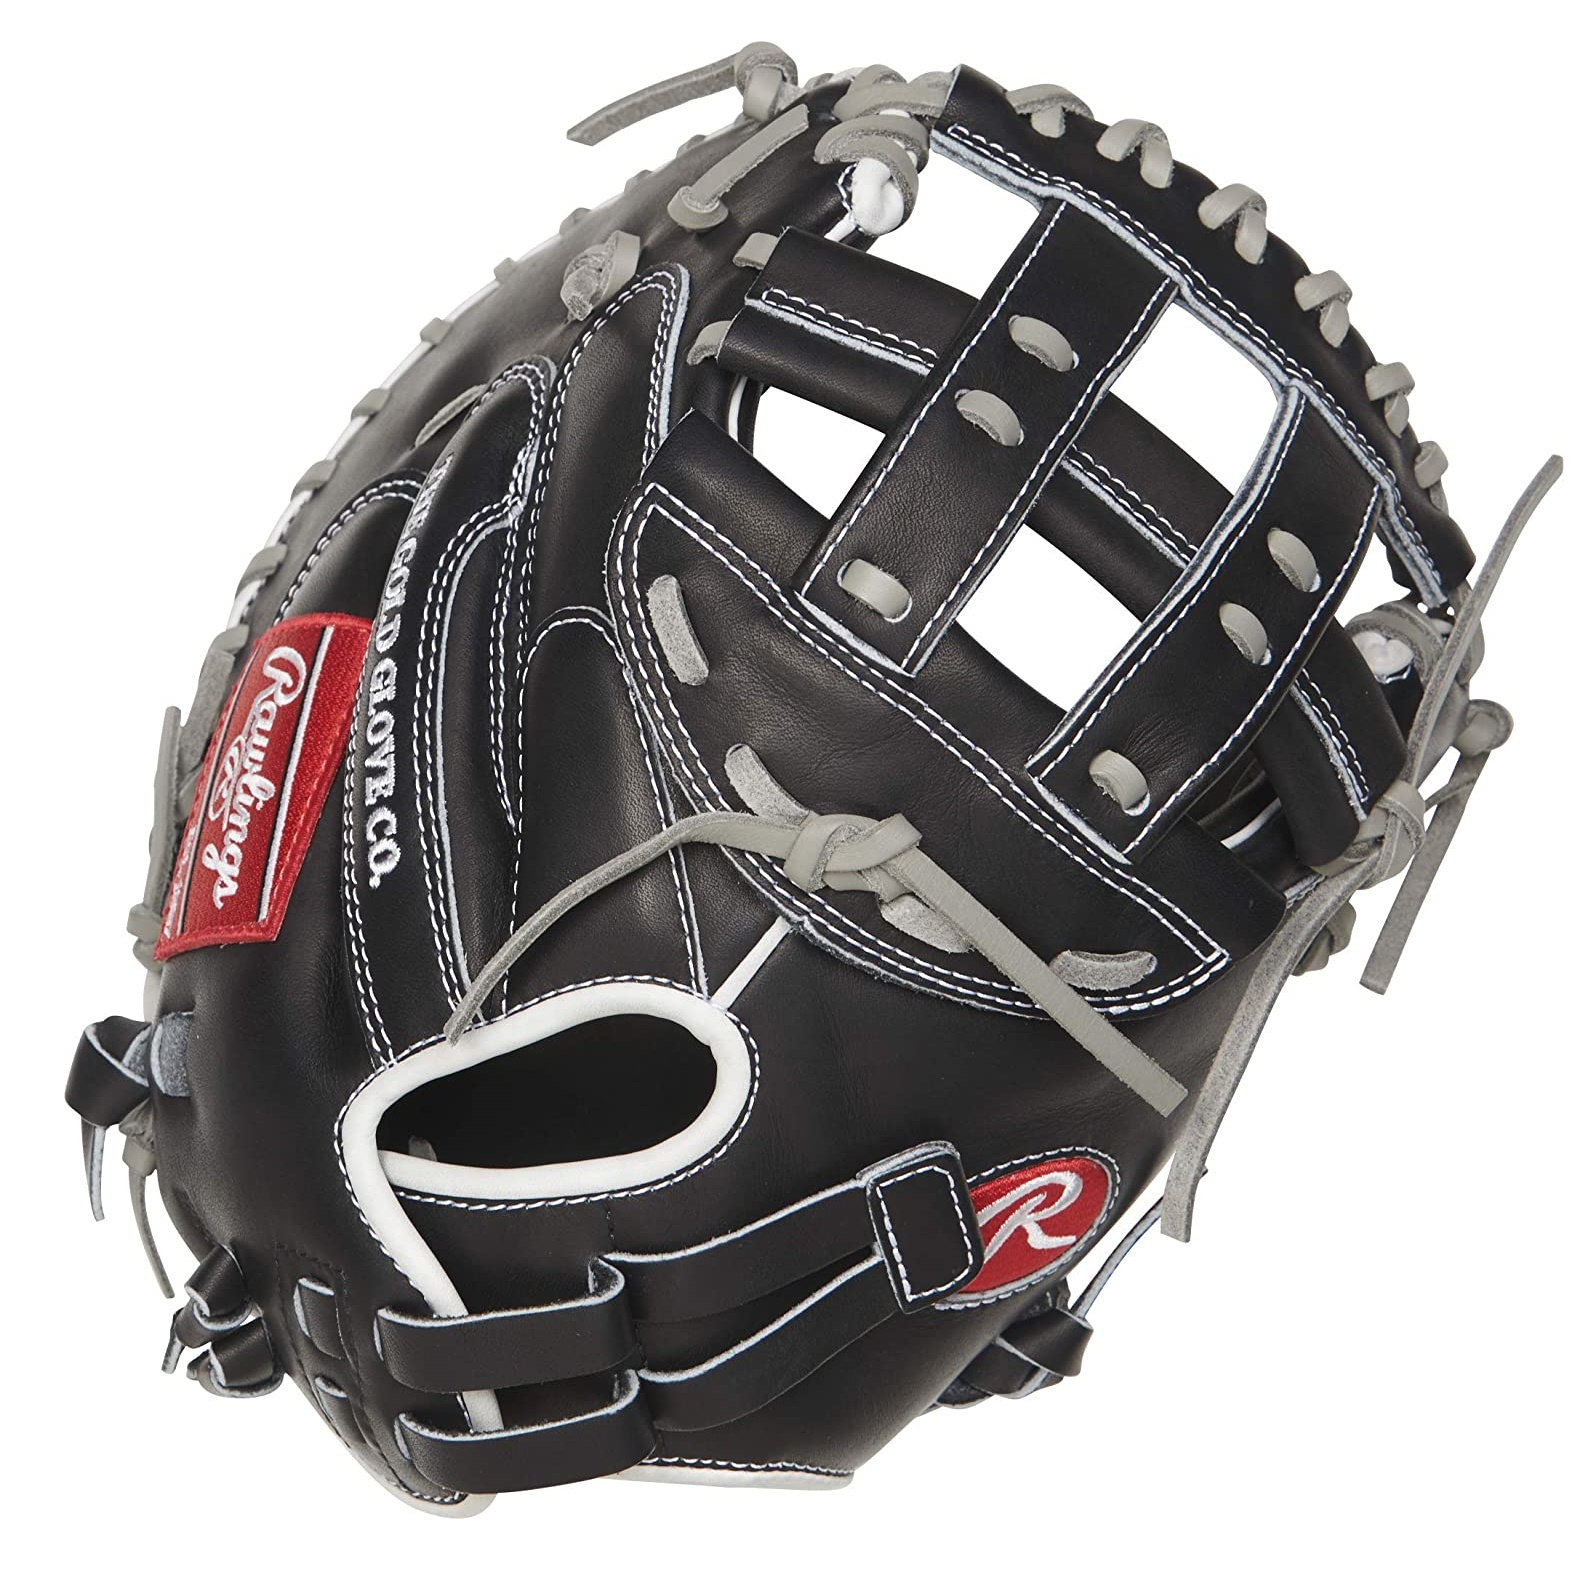 rawlings-heart-of-the-hide-fastpitch-softball-glove-12-5-inch-right-hand-throw PROCM33FP-24BG-RightHandThrow   Constructed from Rawlings' world-renowned Heart of the Hide® steer hide leather